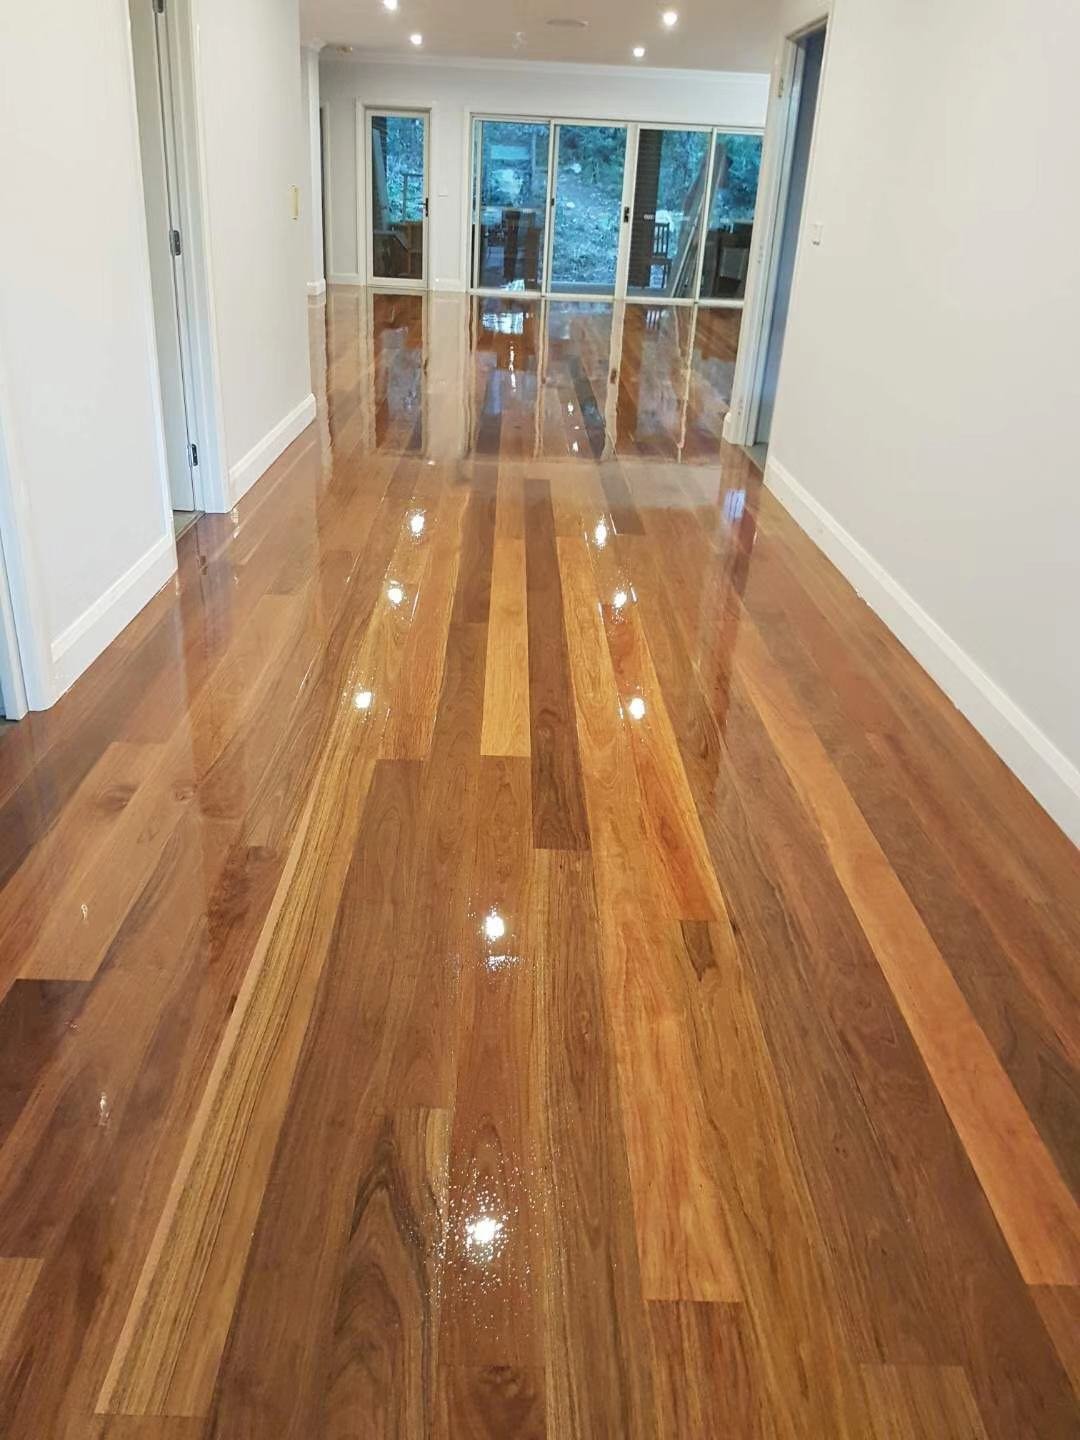 Sand and polish - Spotted Gum - 001